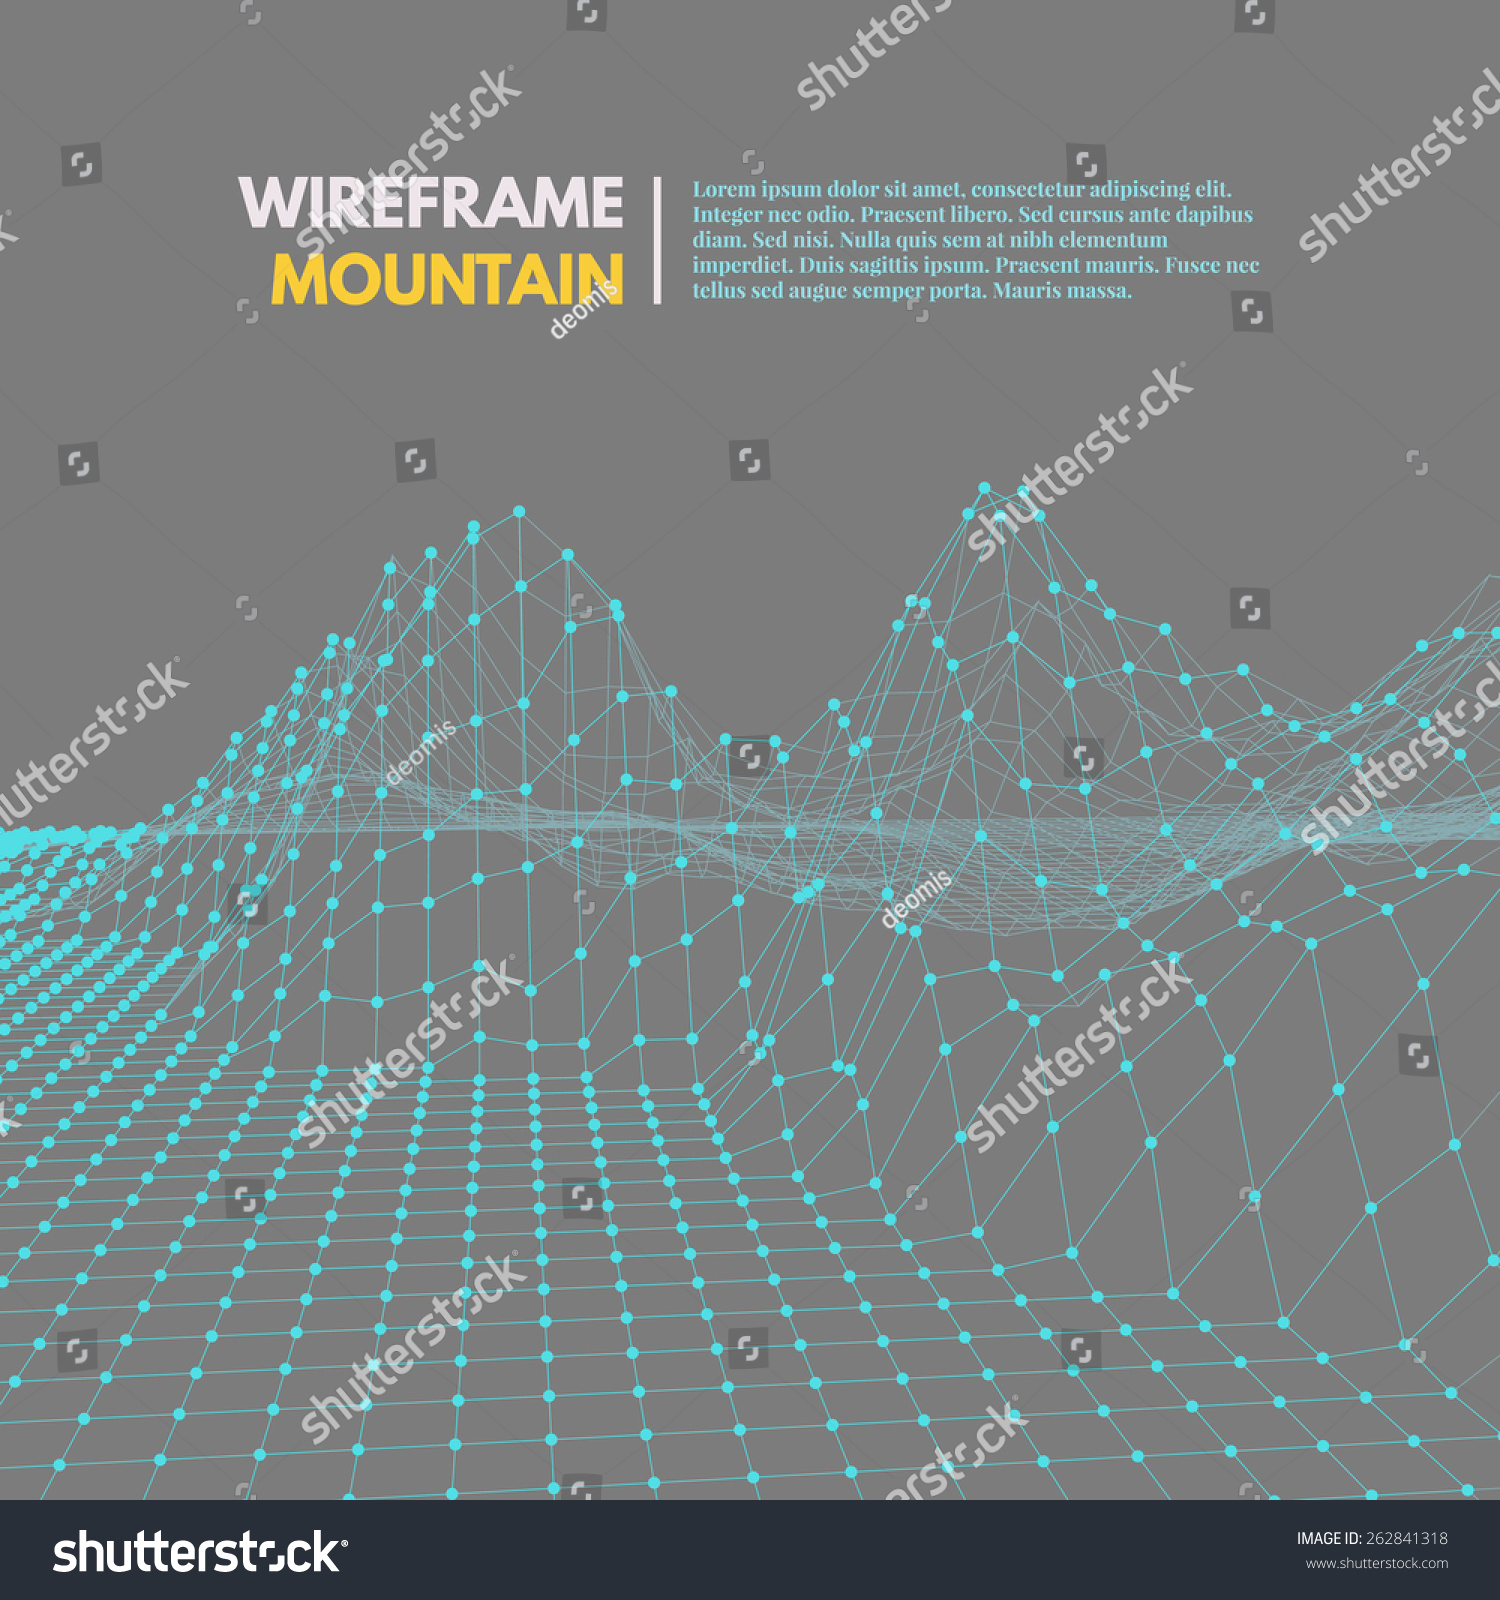 wireframe mountains wireframe mesh polygonal surface mountains with connected 7101